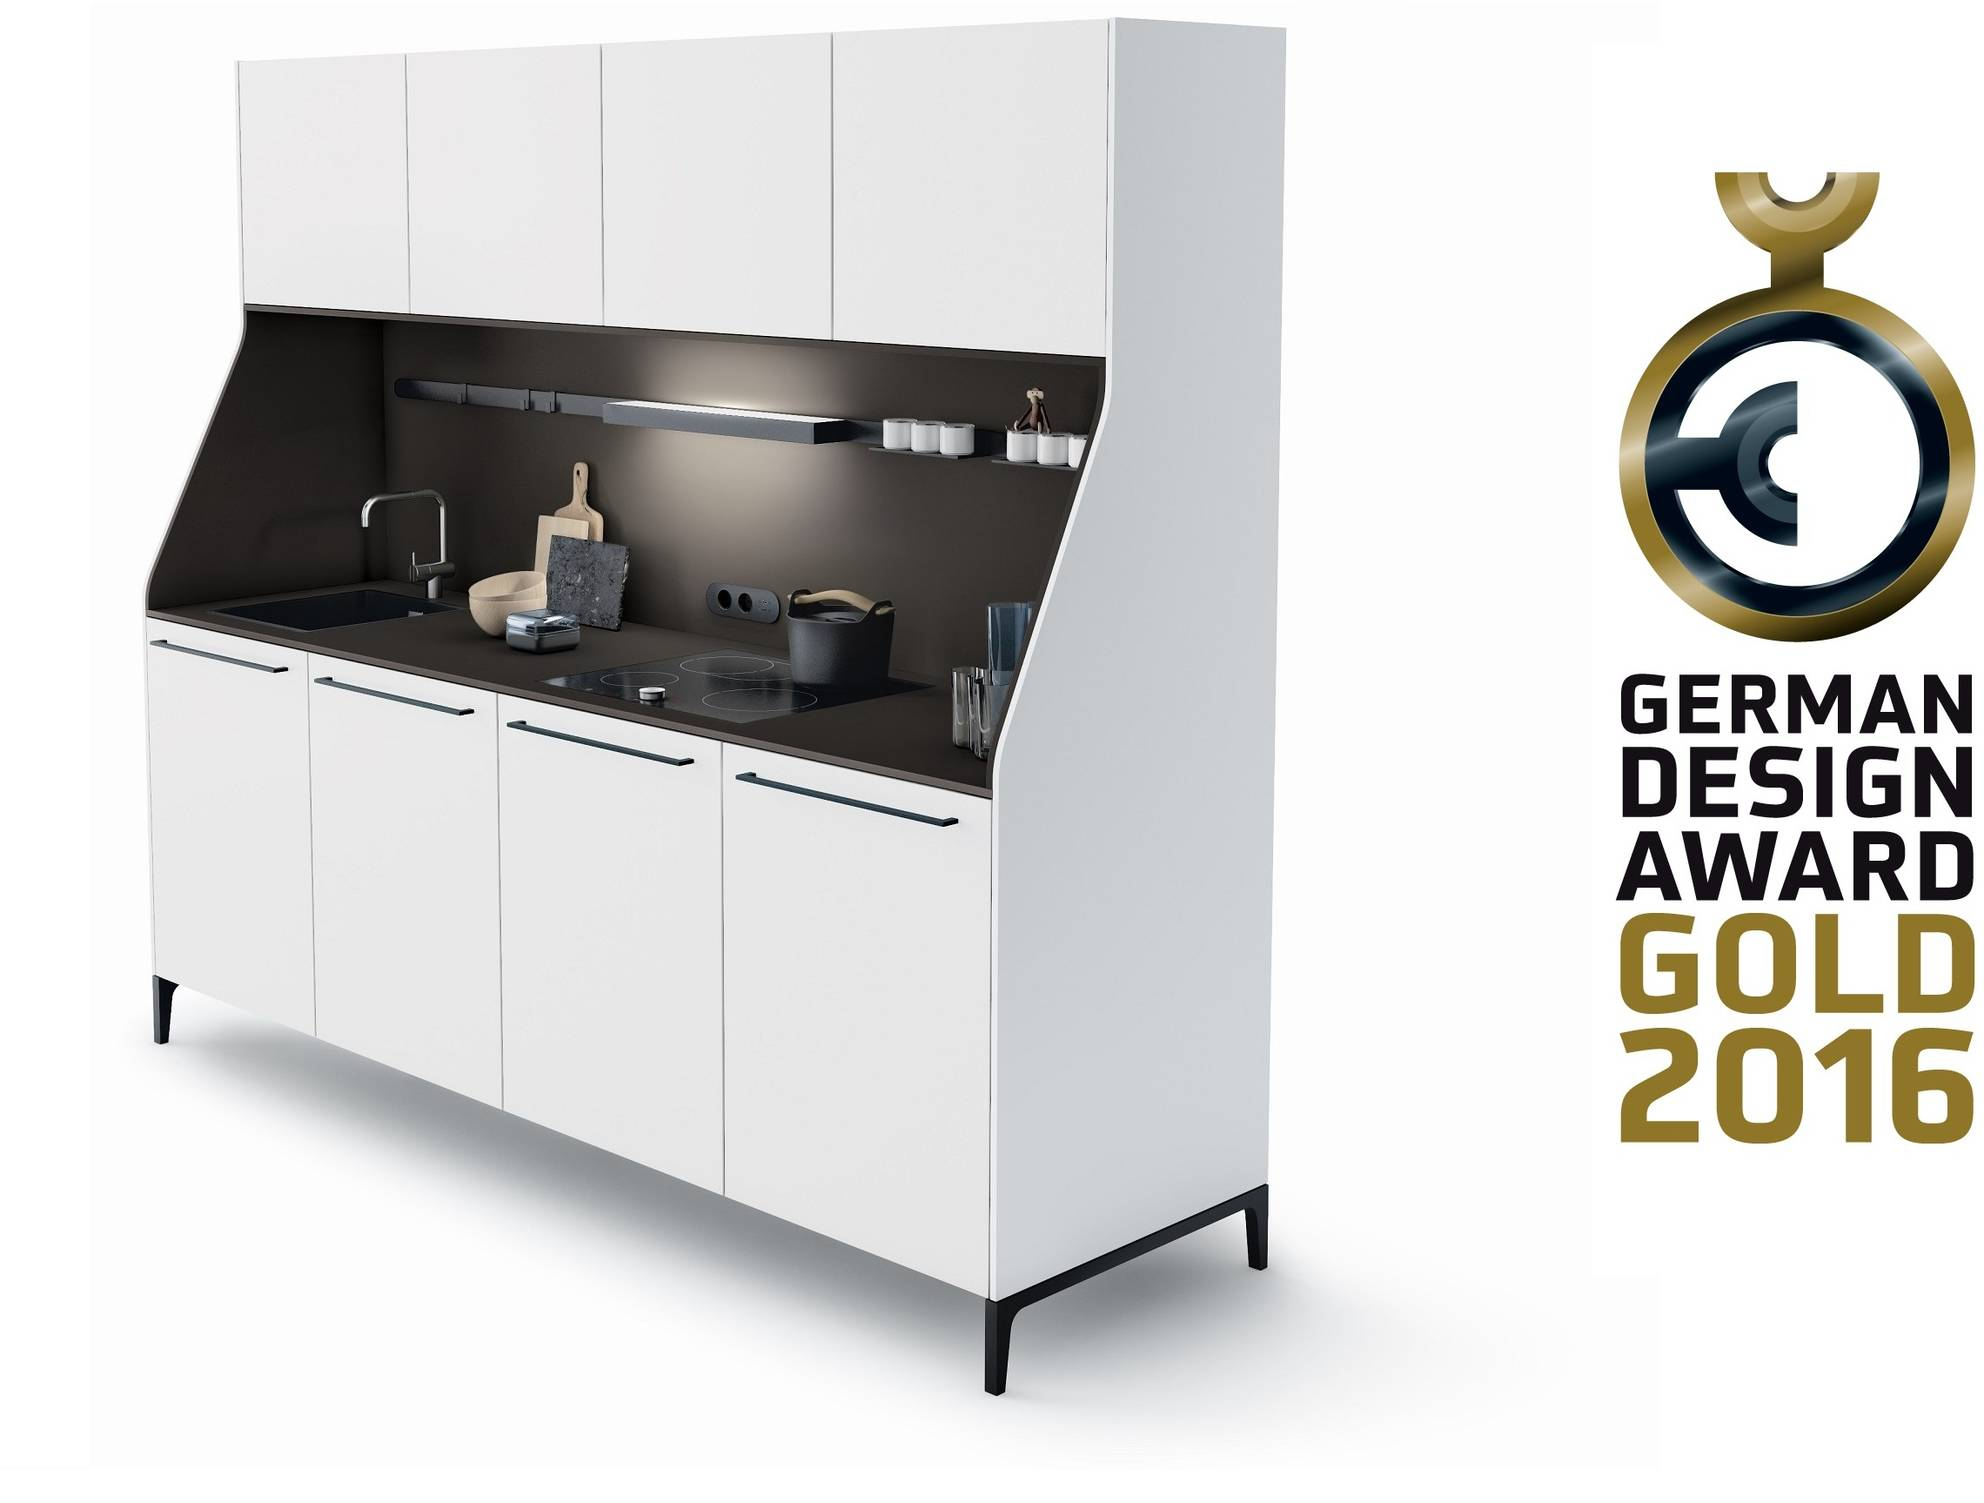 SieMatic 29 a reçu la médaille d'or du German Design Award en 2016 par le German Design Council.